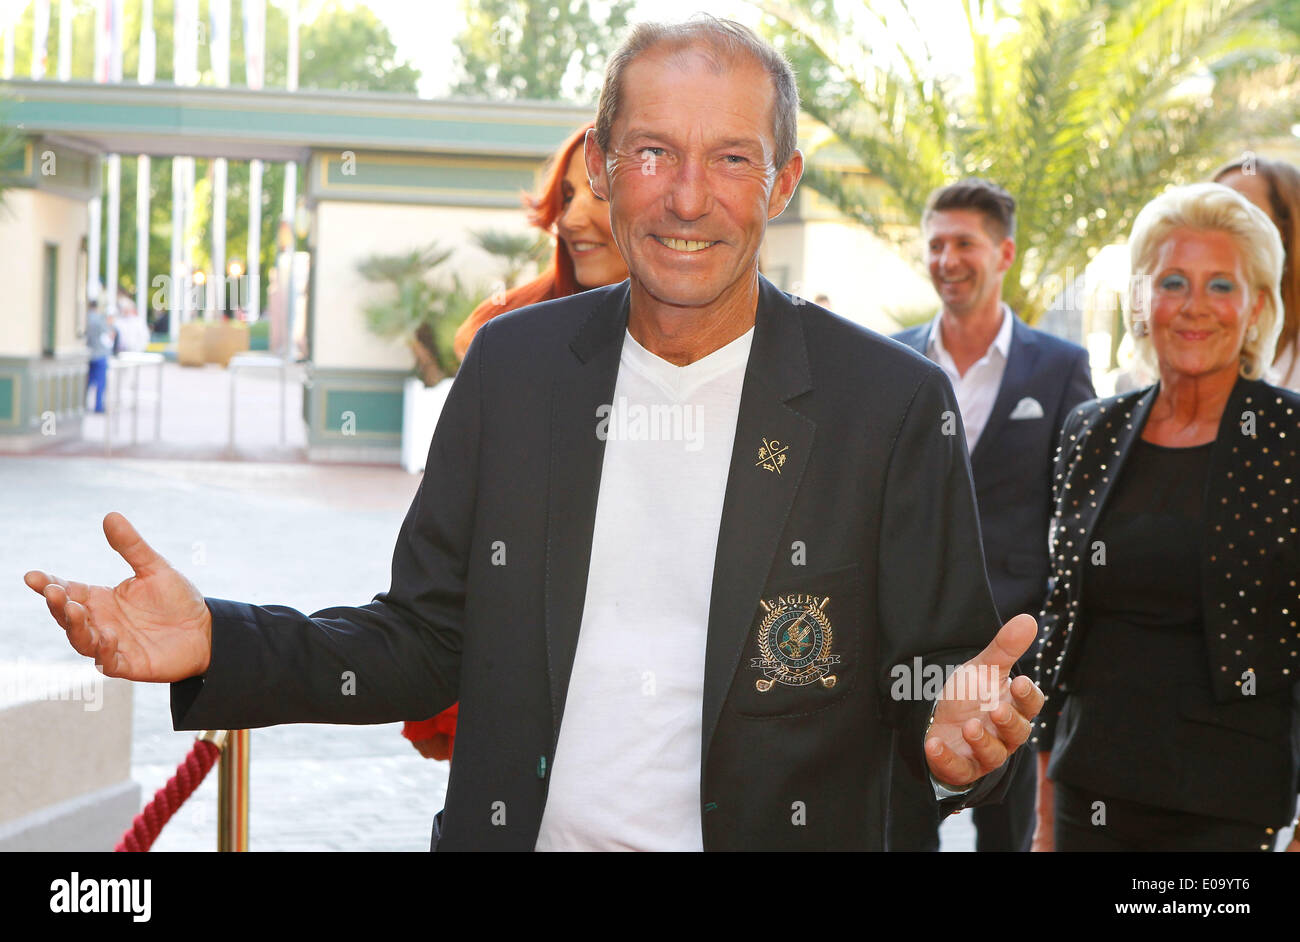 Herbolzheim, Germany - May 5, 2014: Eagles Charity Golf Cup and Gala at Golfclub Breisgau and Europa Park, Rust with Actor Michael Lesch Credit:  dpa picture alliance/Alamy Live News - Stock Image